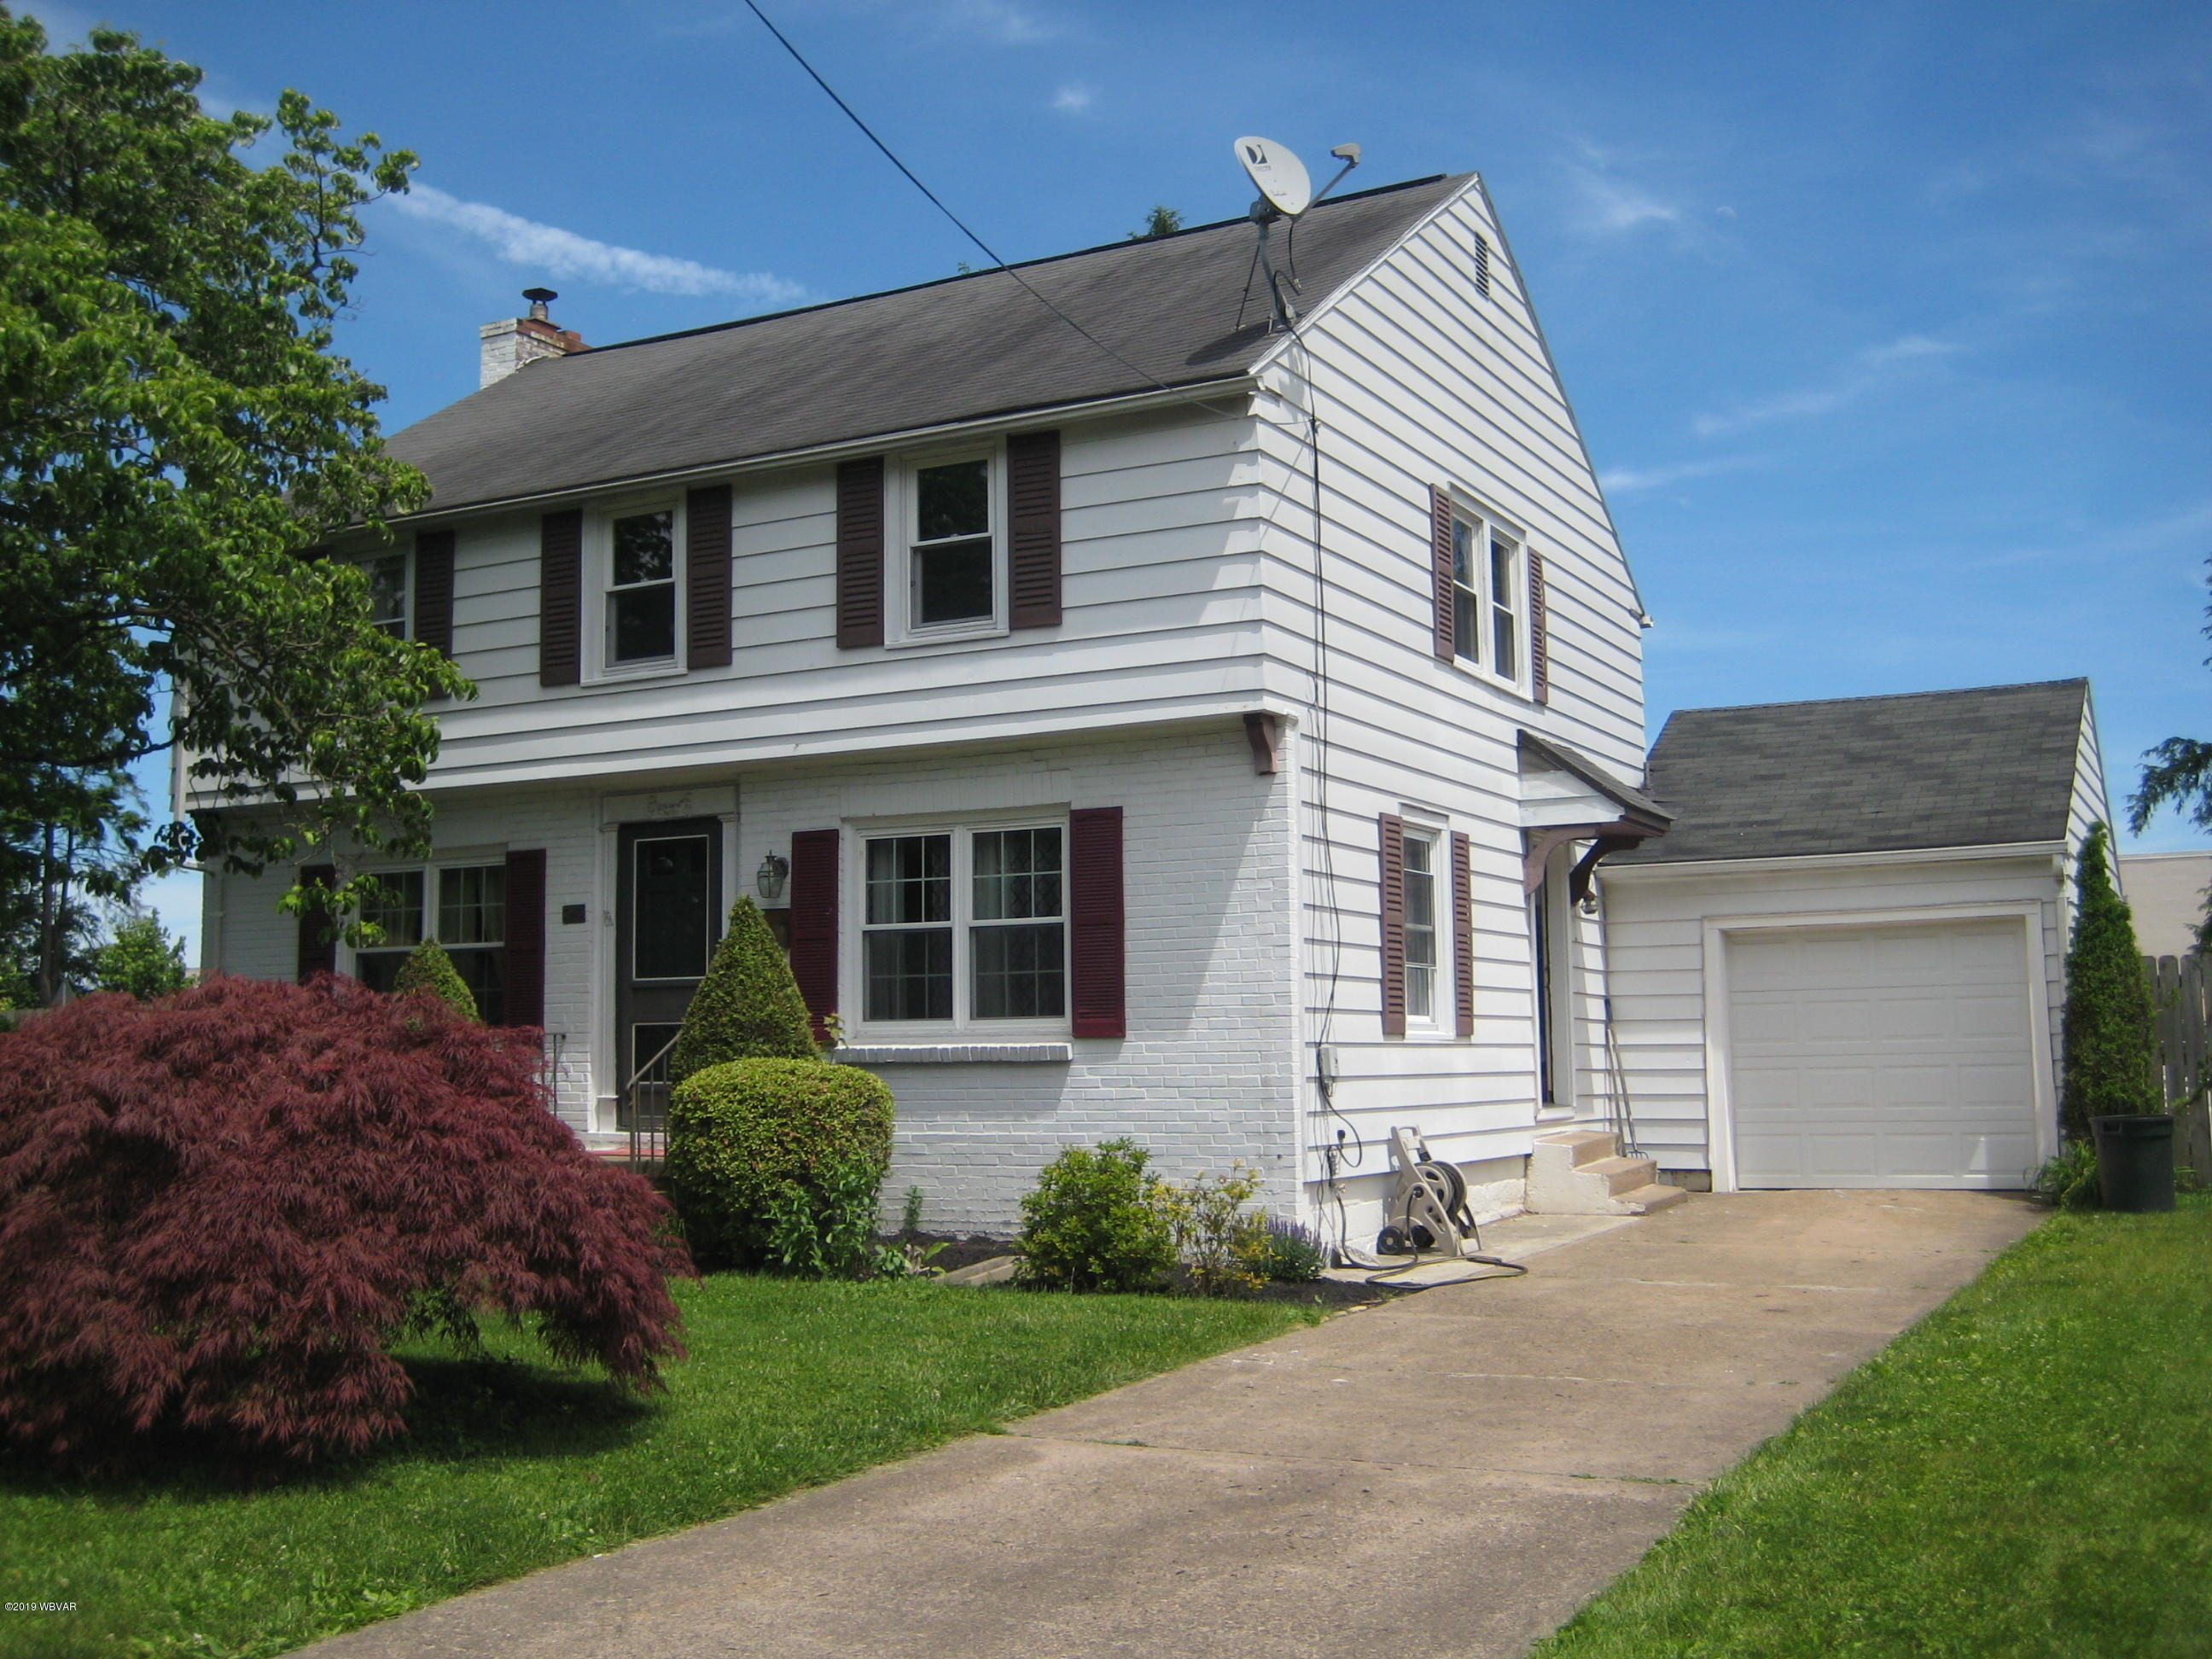 340 TINSMAN AVENUE,Williamsport,PA 17701,3 Bedrooms Bedrooms,1.5 BathroomsBathrooms,Residential,TINSMAN,WB-87630